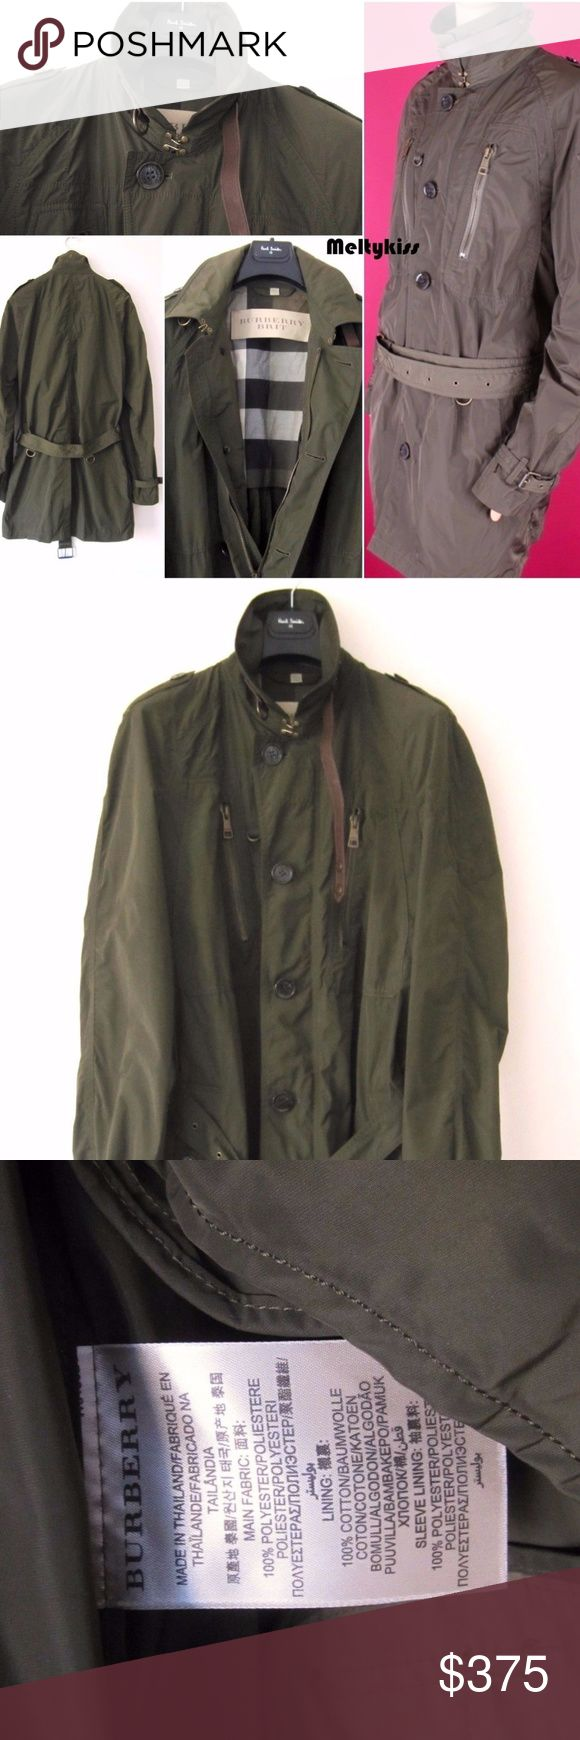 NWOT AUTHENTIC BURBERRY BRIT MEN'S TRENCH COAT Retail Price- $895 Sz- XL(Armpit-24, Length-37.5 inches) Composition-100% Polyester Color-Khaki Green Burberry Jackets & Coats Military & Field